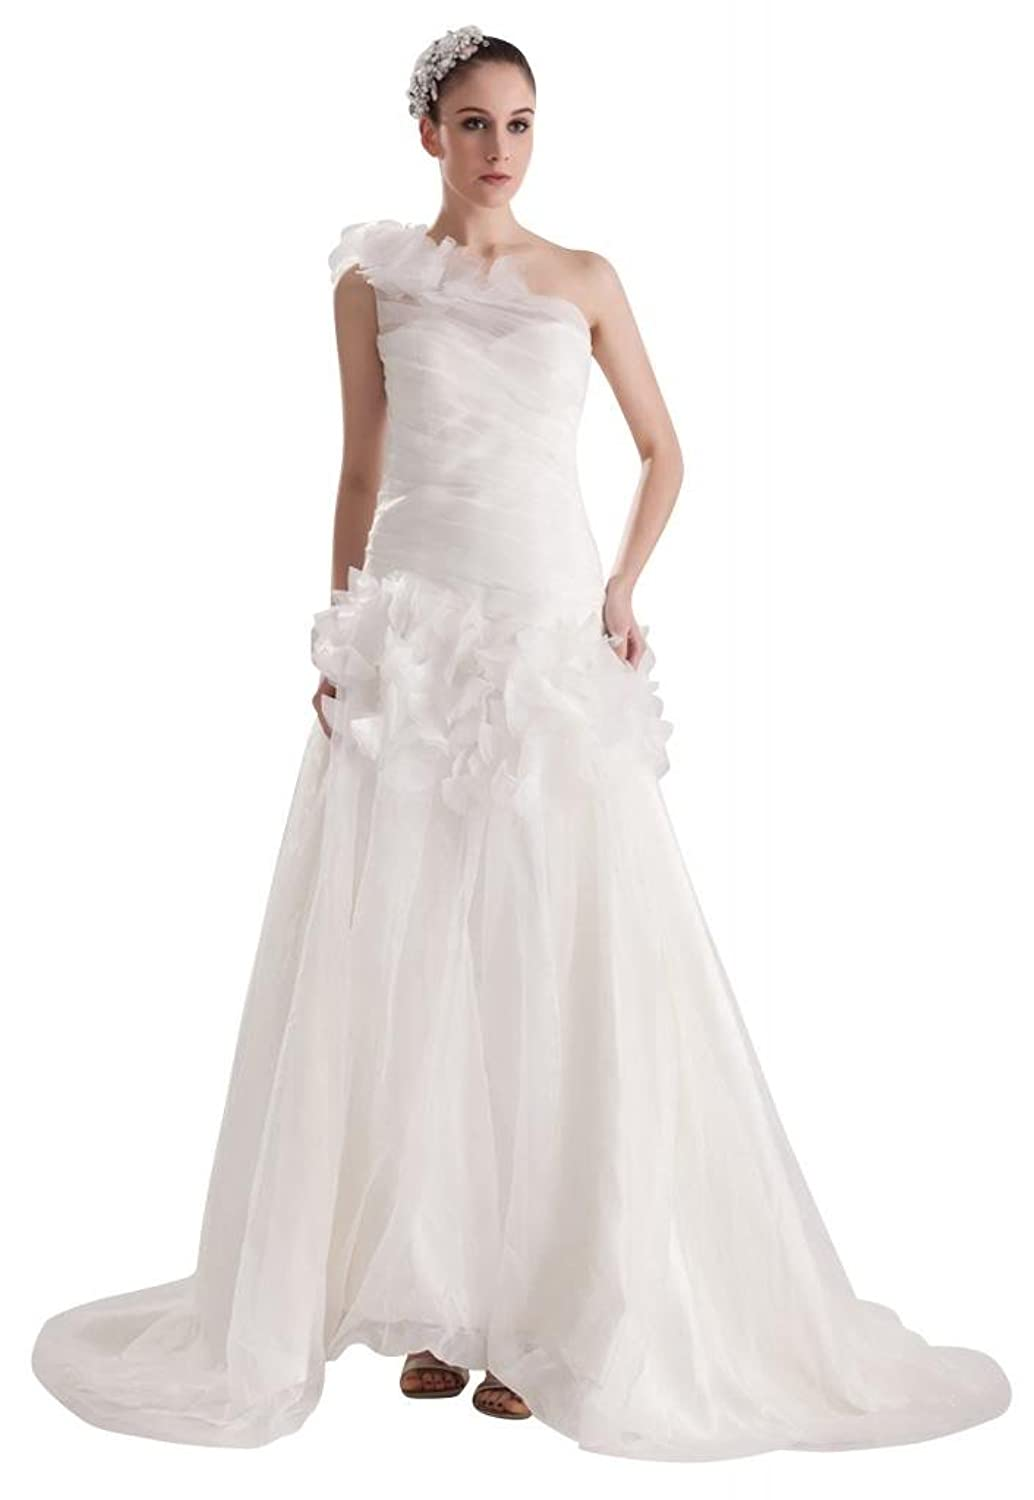 GEORGE BRIDE Elagnt New One Shoulder Formal Outdoor Wedding Dress